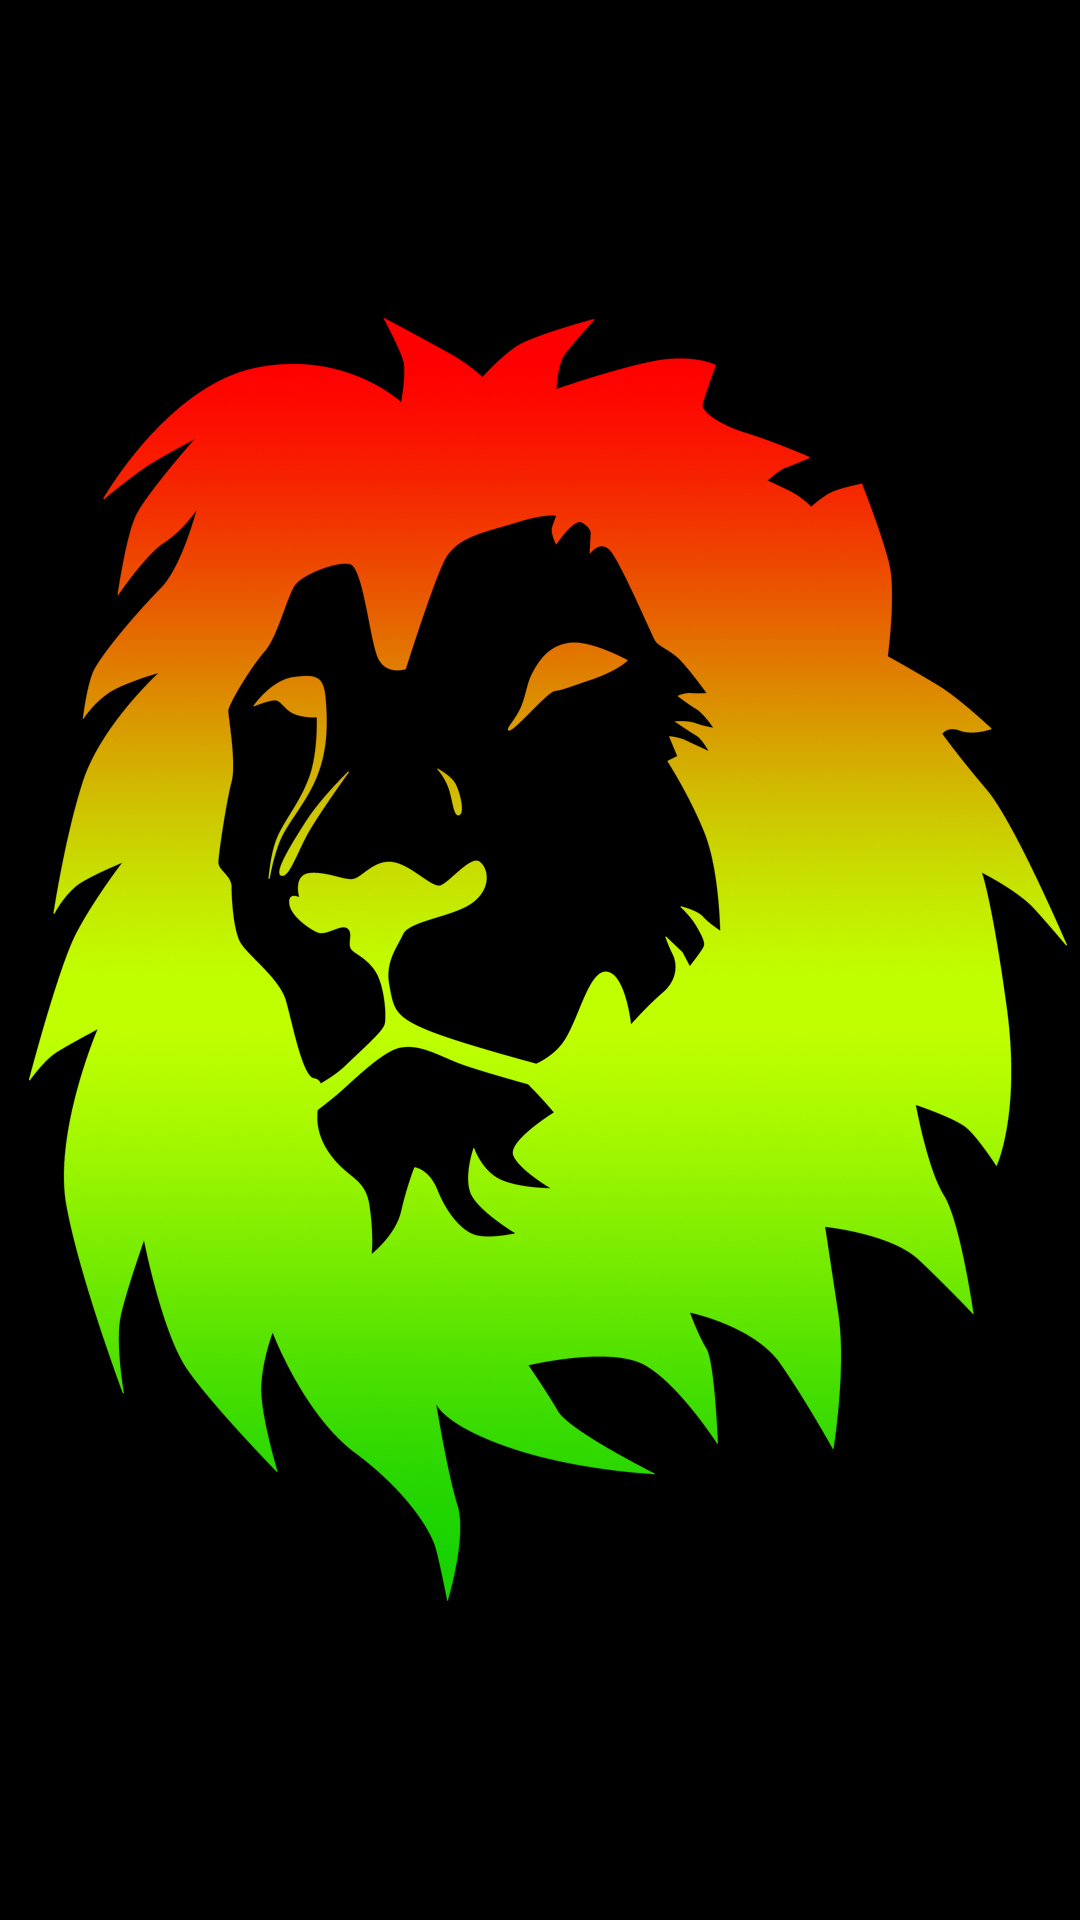 Trending Wallpapers For Iphone X Rasta Color Lion 1080 X 1920 Hd Phone Wallpaper